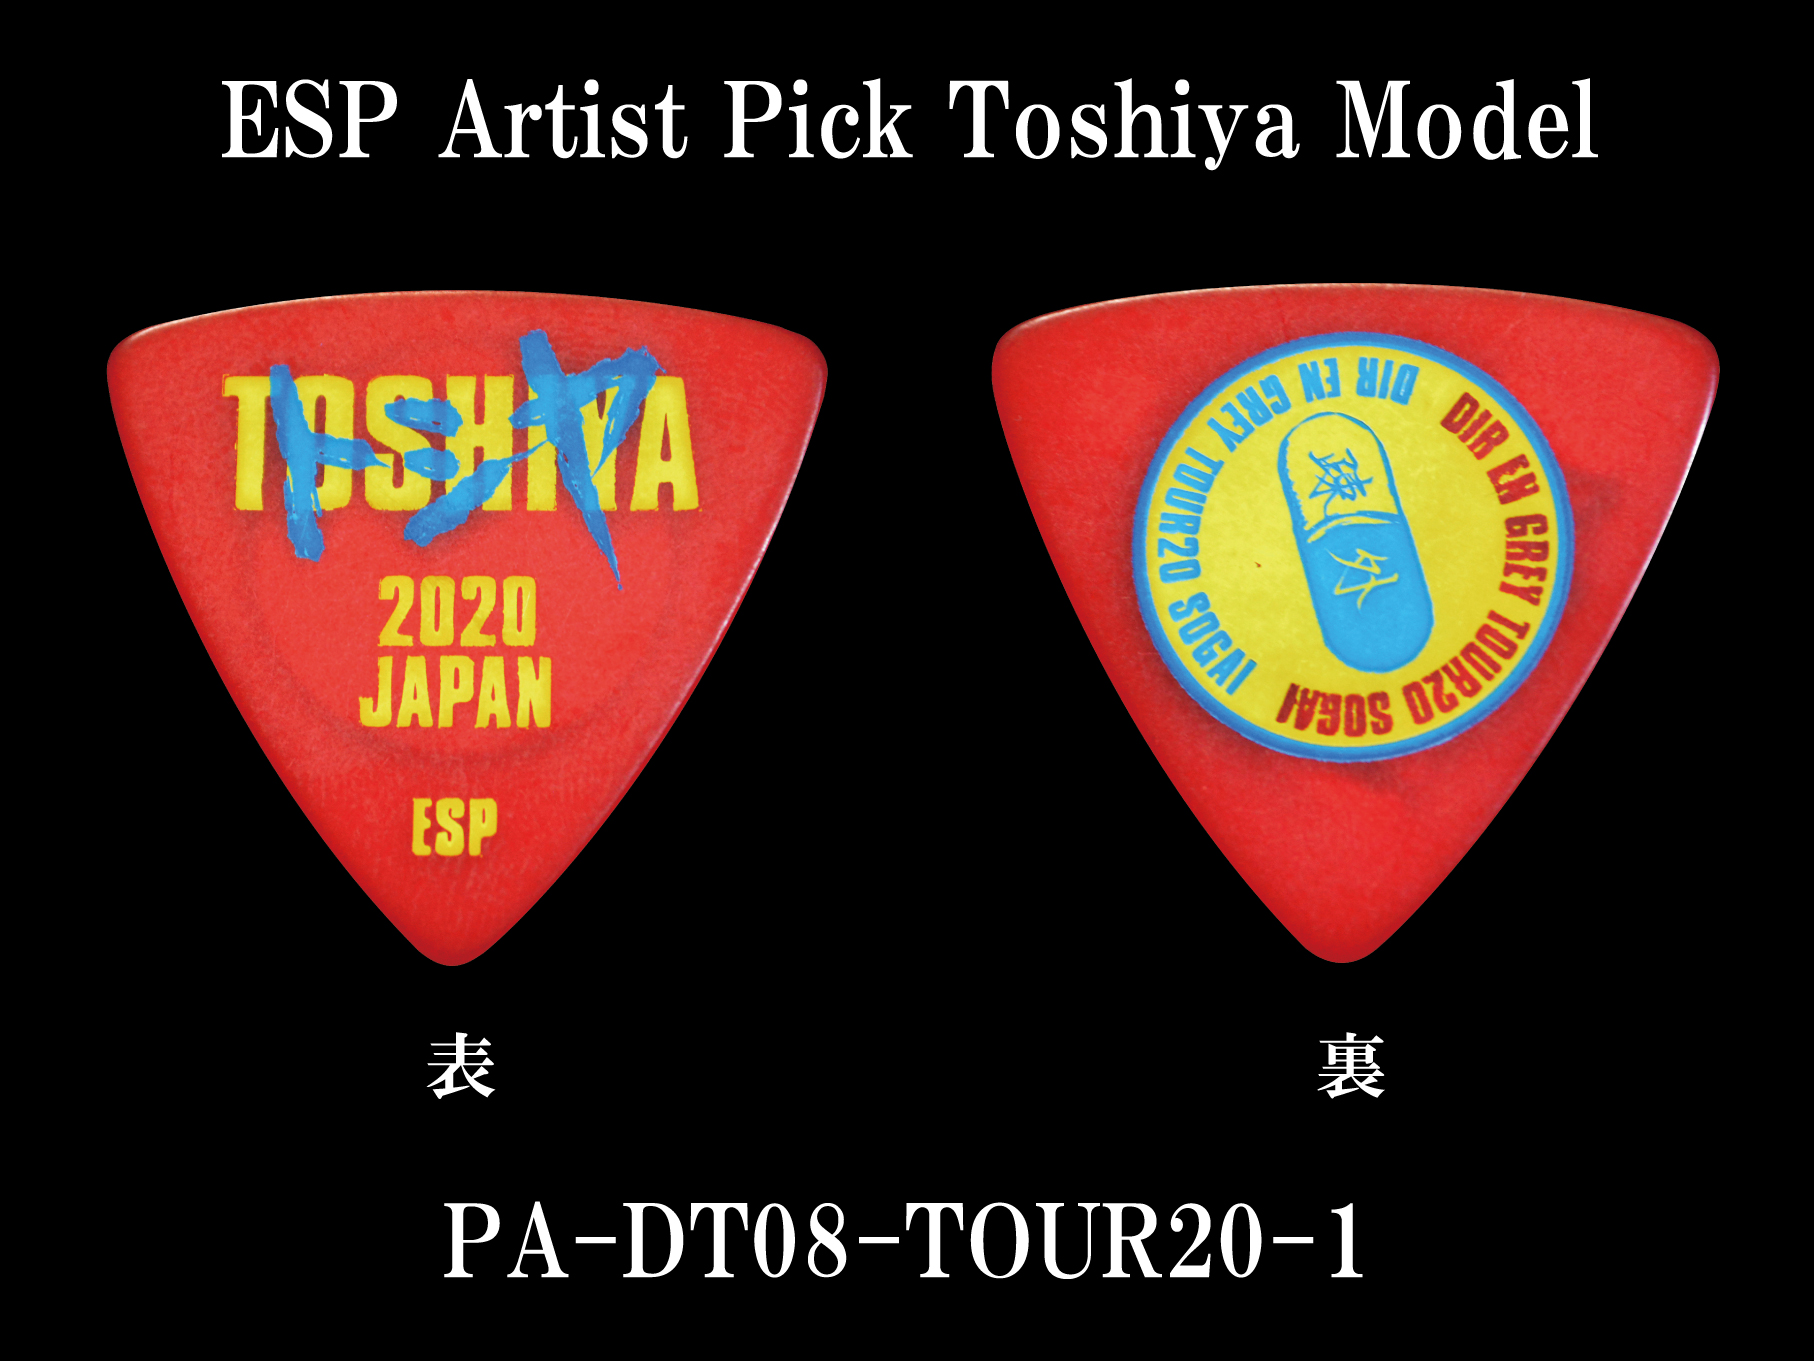 ESP(イーエスピー) Artist Pick Series PA-DT08-TOUR20-1 (DIR EN GREY/Toshiya Model)